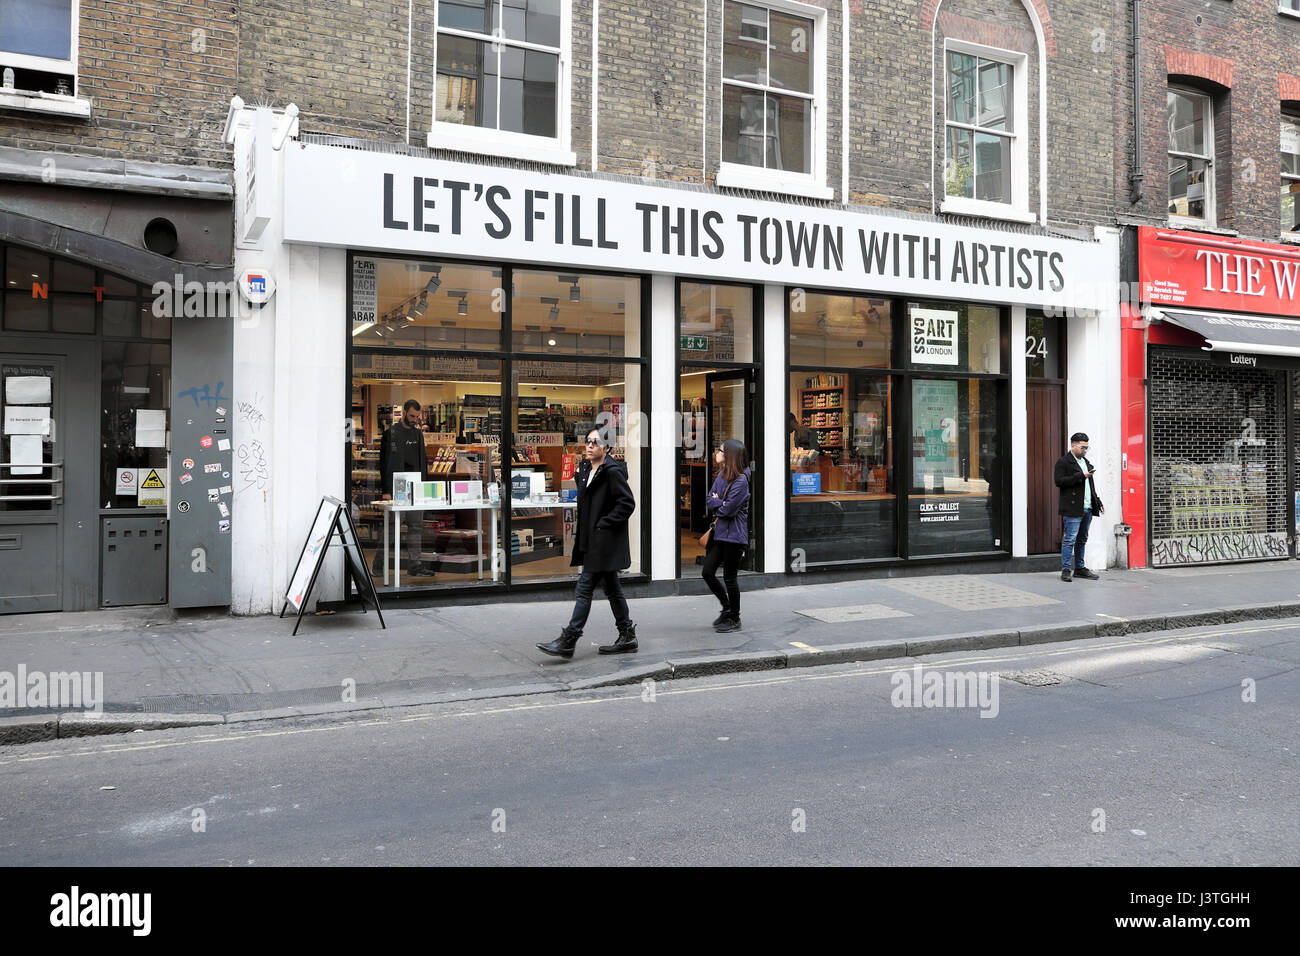 """Let's Fill This Town With Artists"" sign on Cass Art shop in Wardour Street, Soho, London UK   KATHY DEWITT Stock Photo"